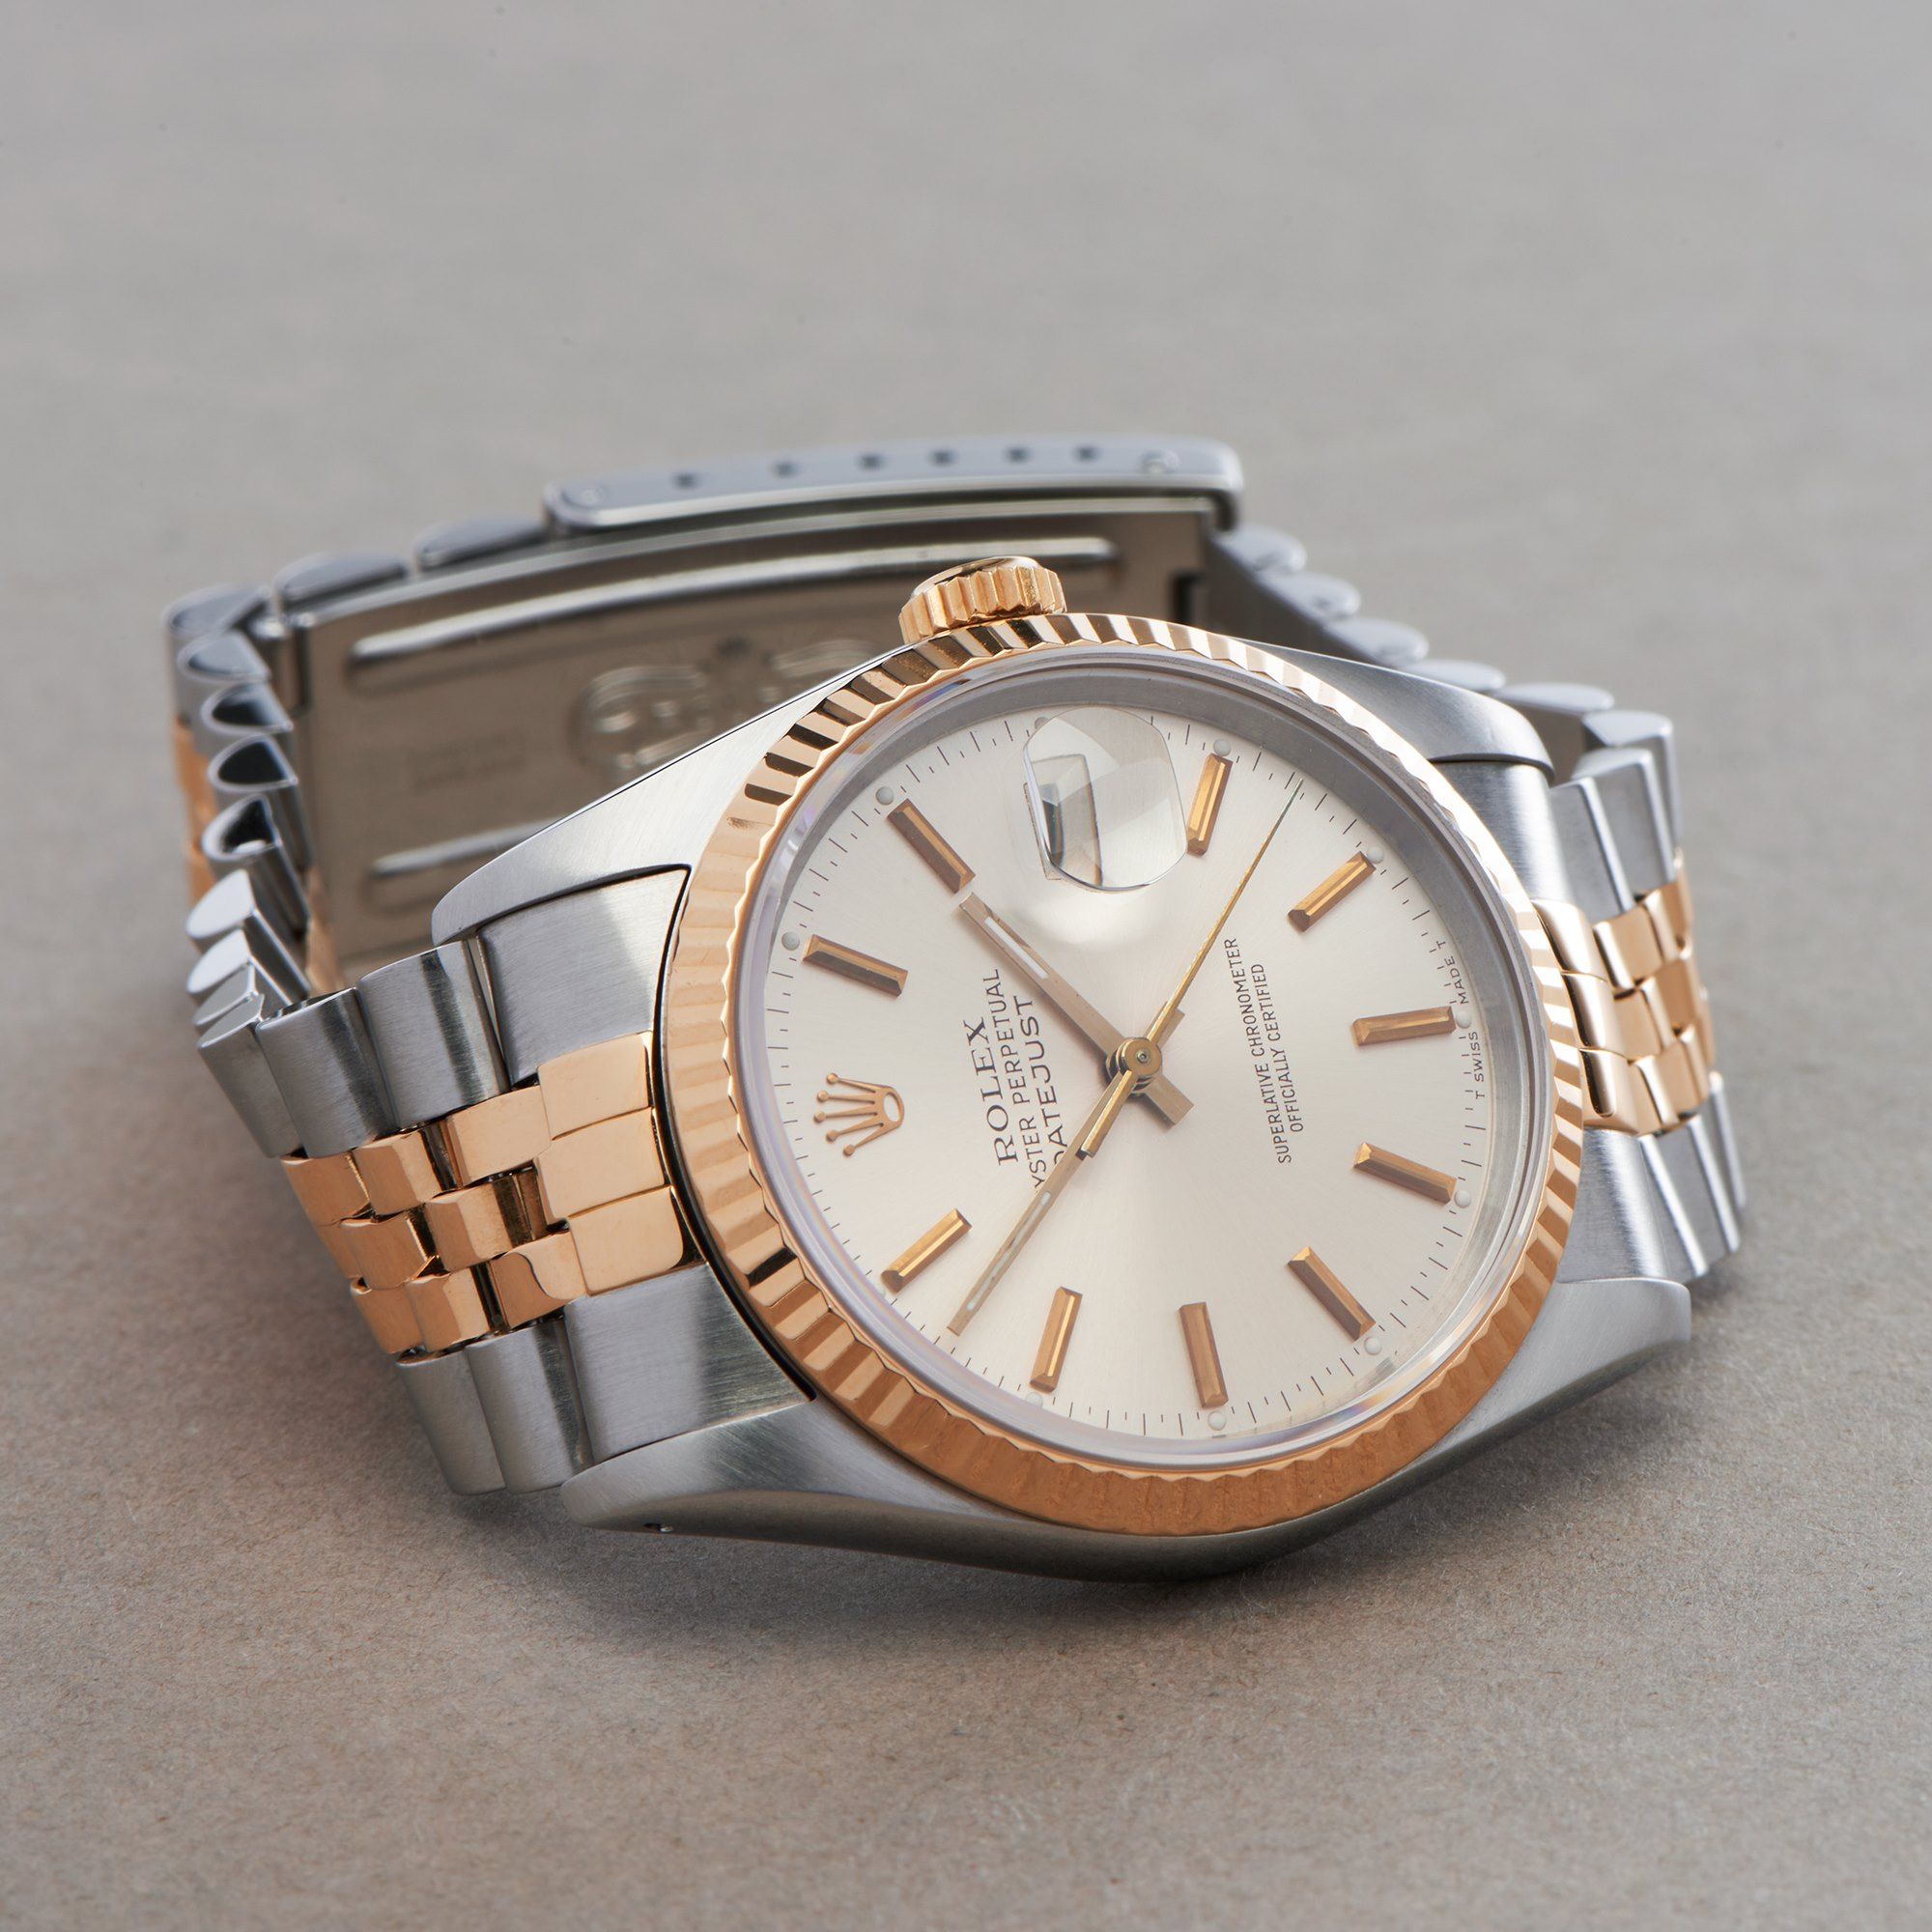 Rolex Datejust 18K Yellow Gold & Stainless Steel 16233